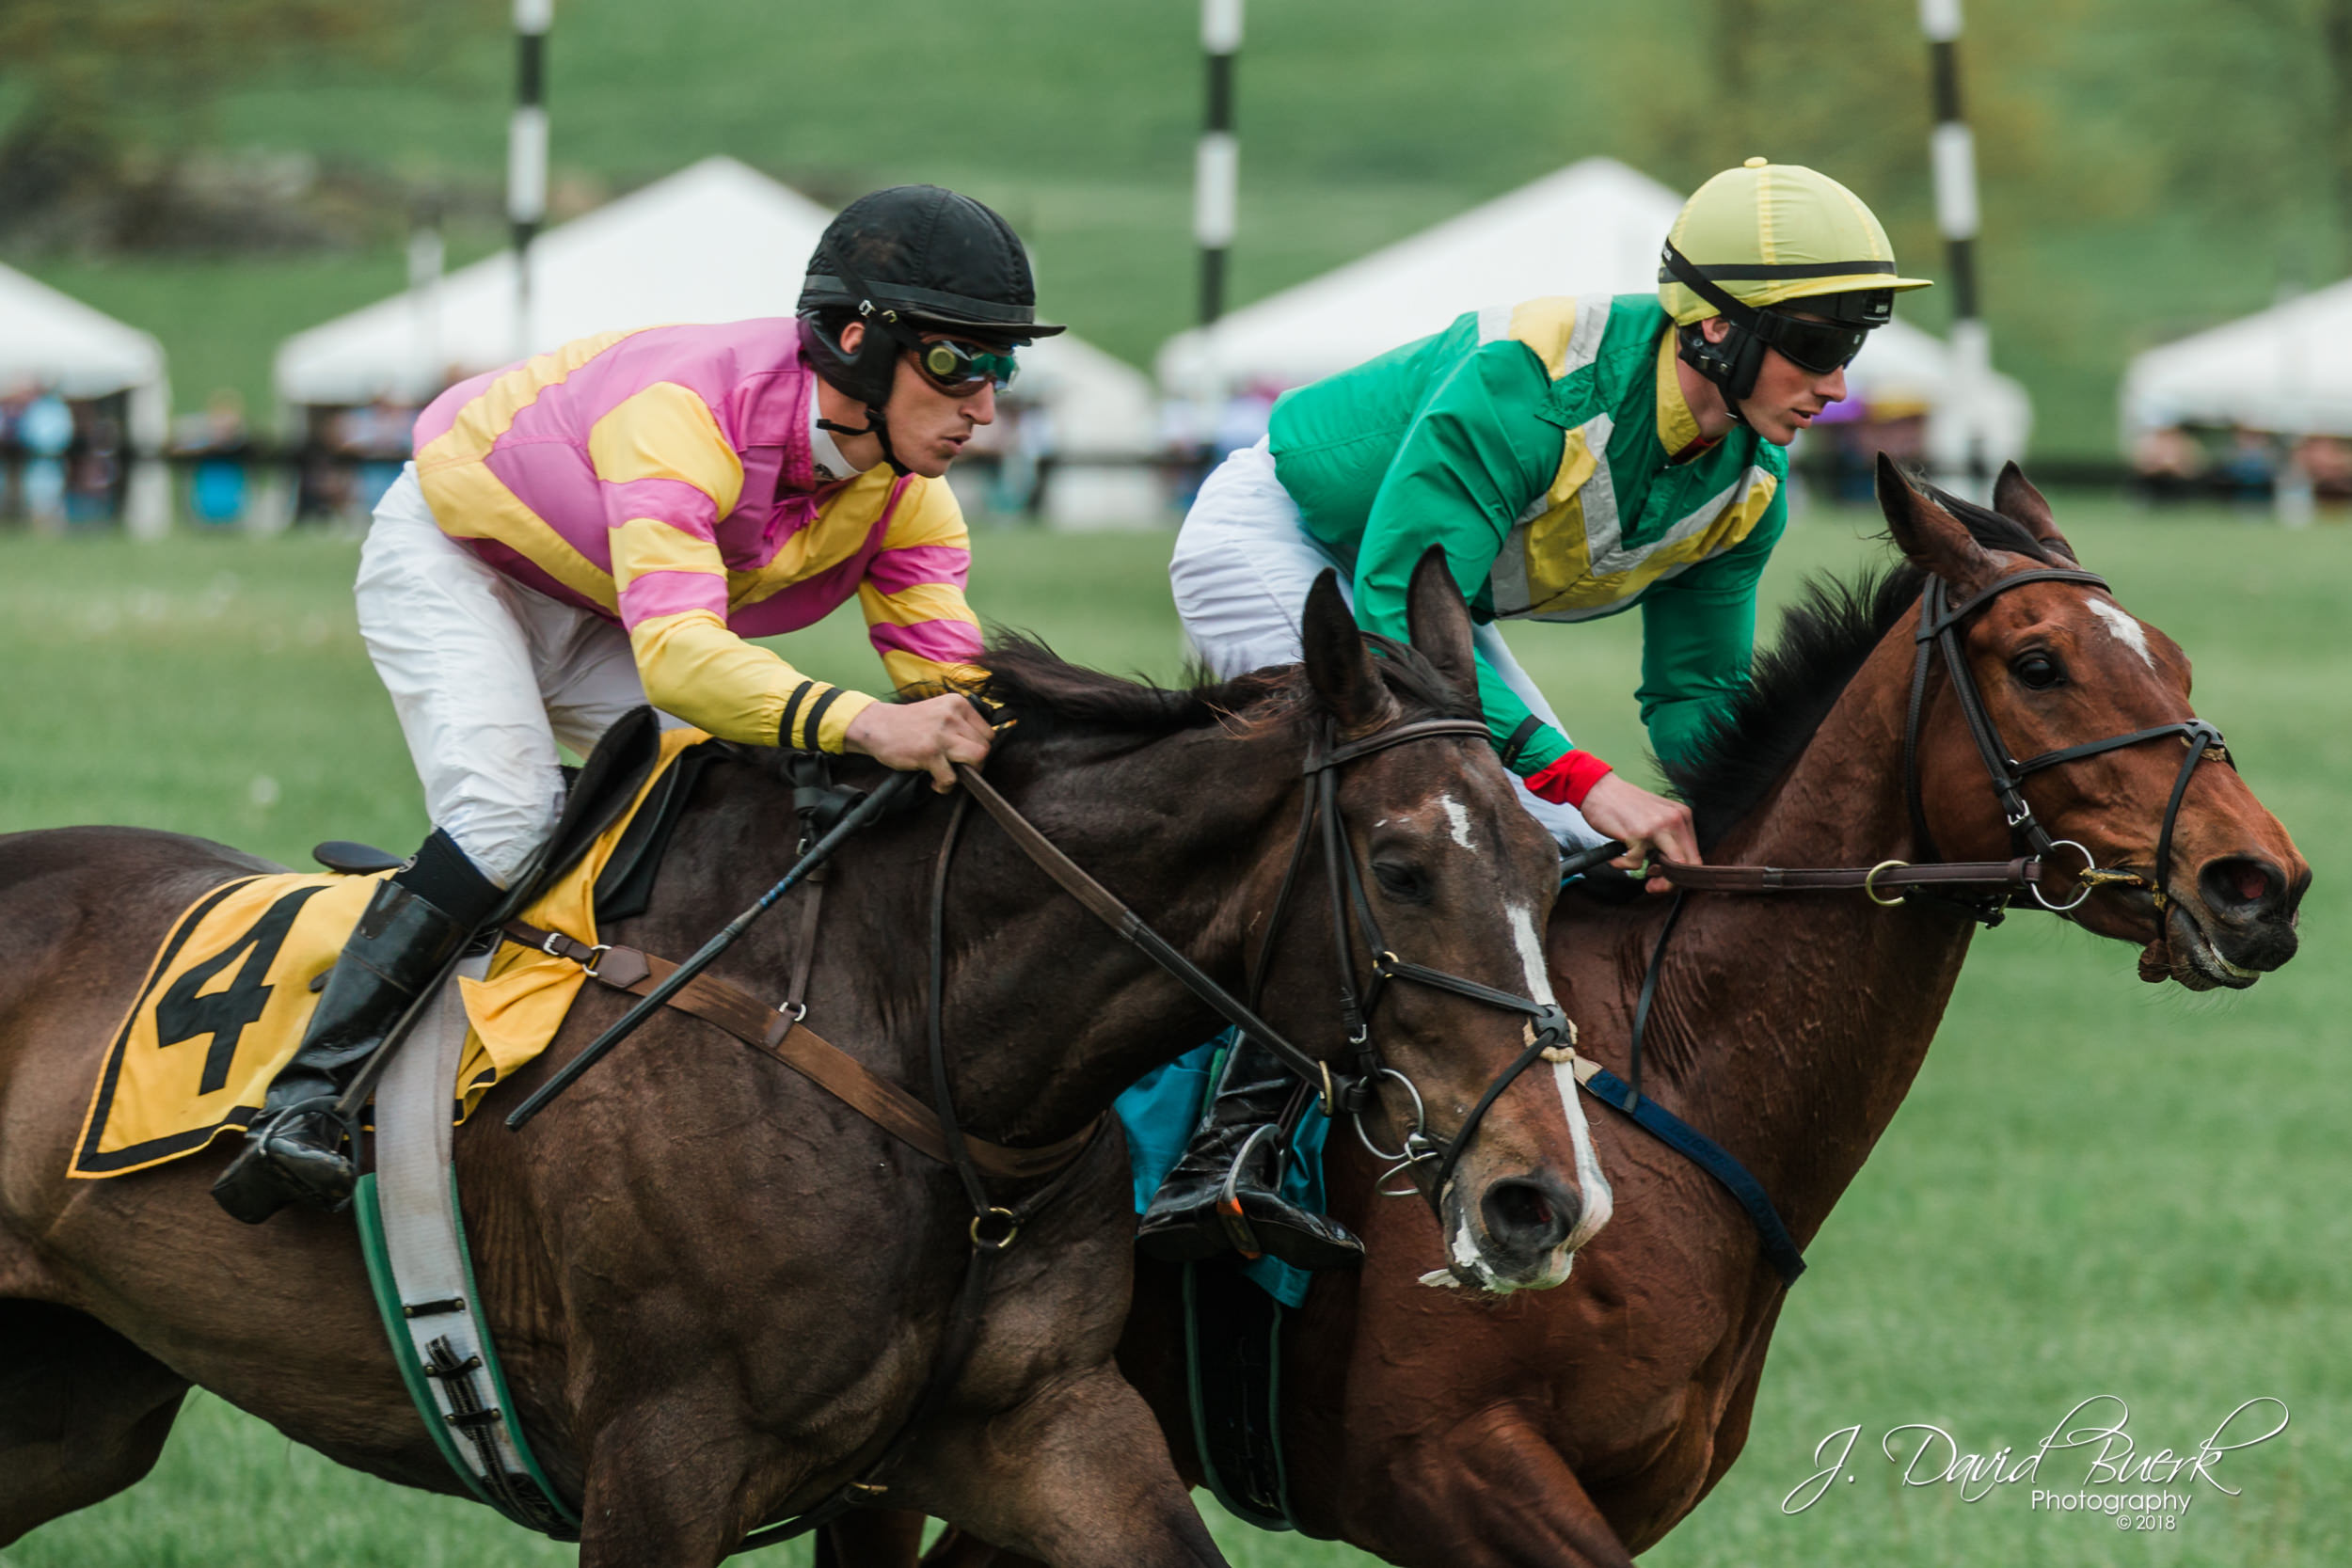 Equestrians during the 2018 Virginia Gold Cup.